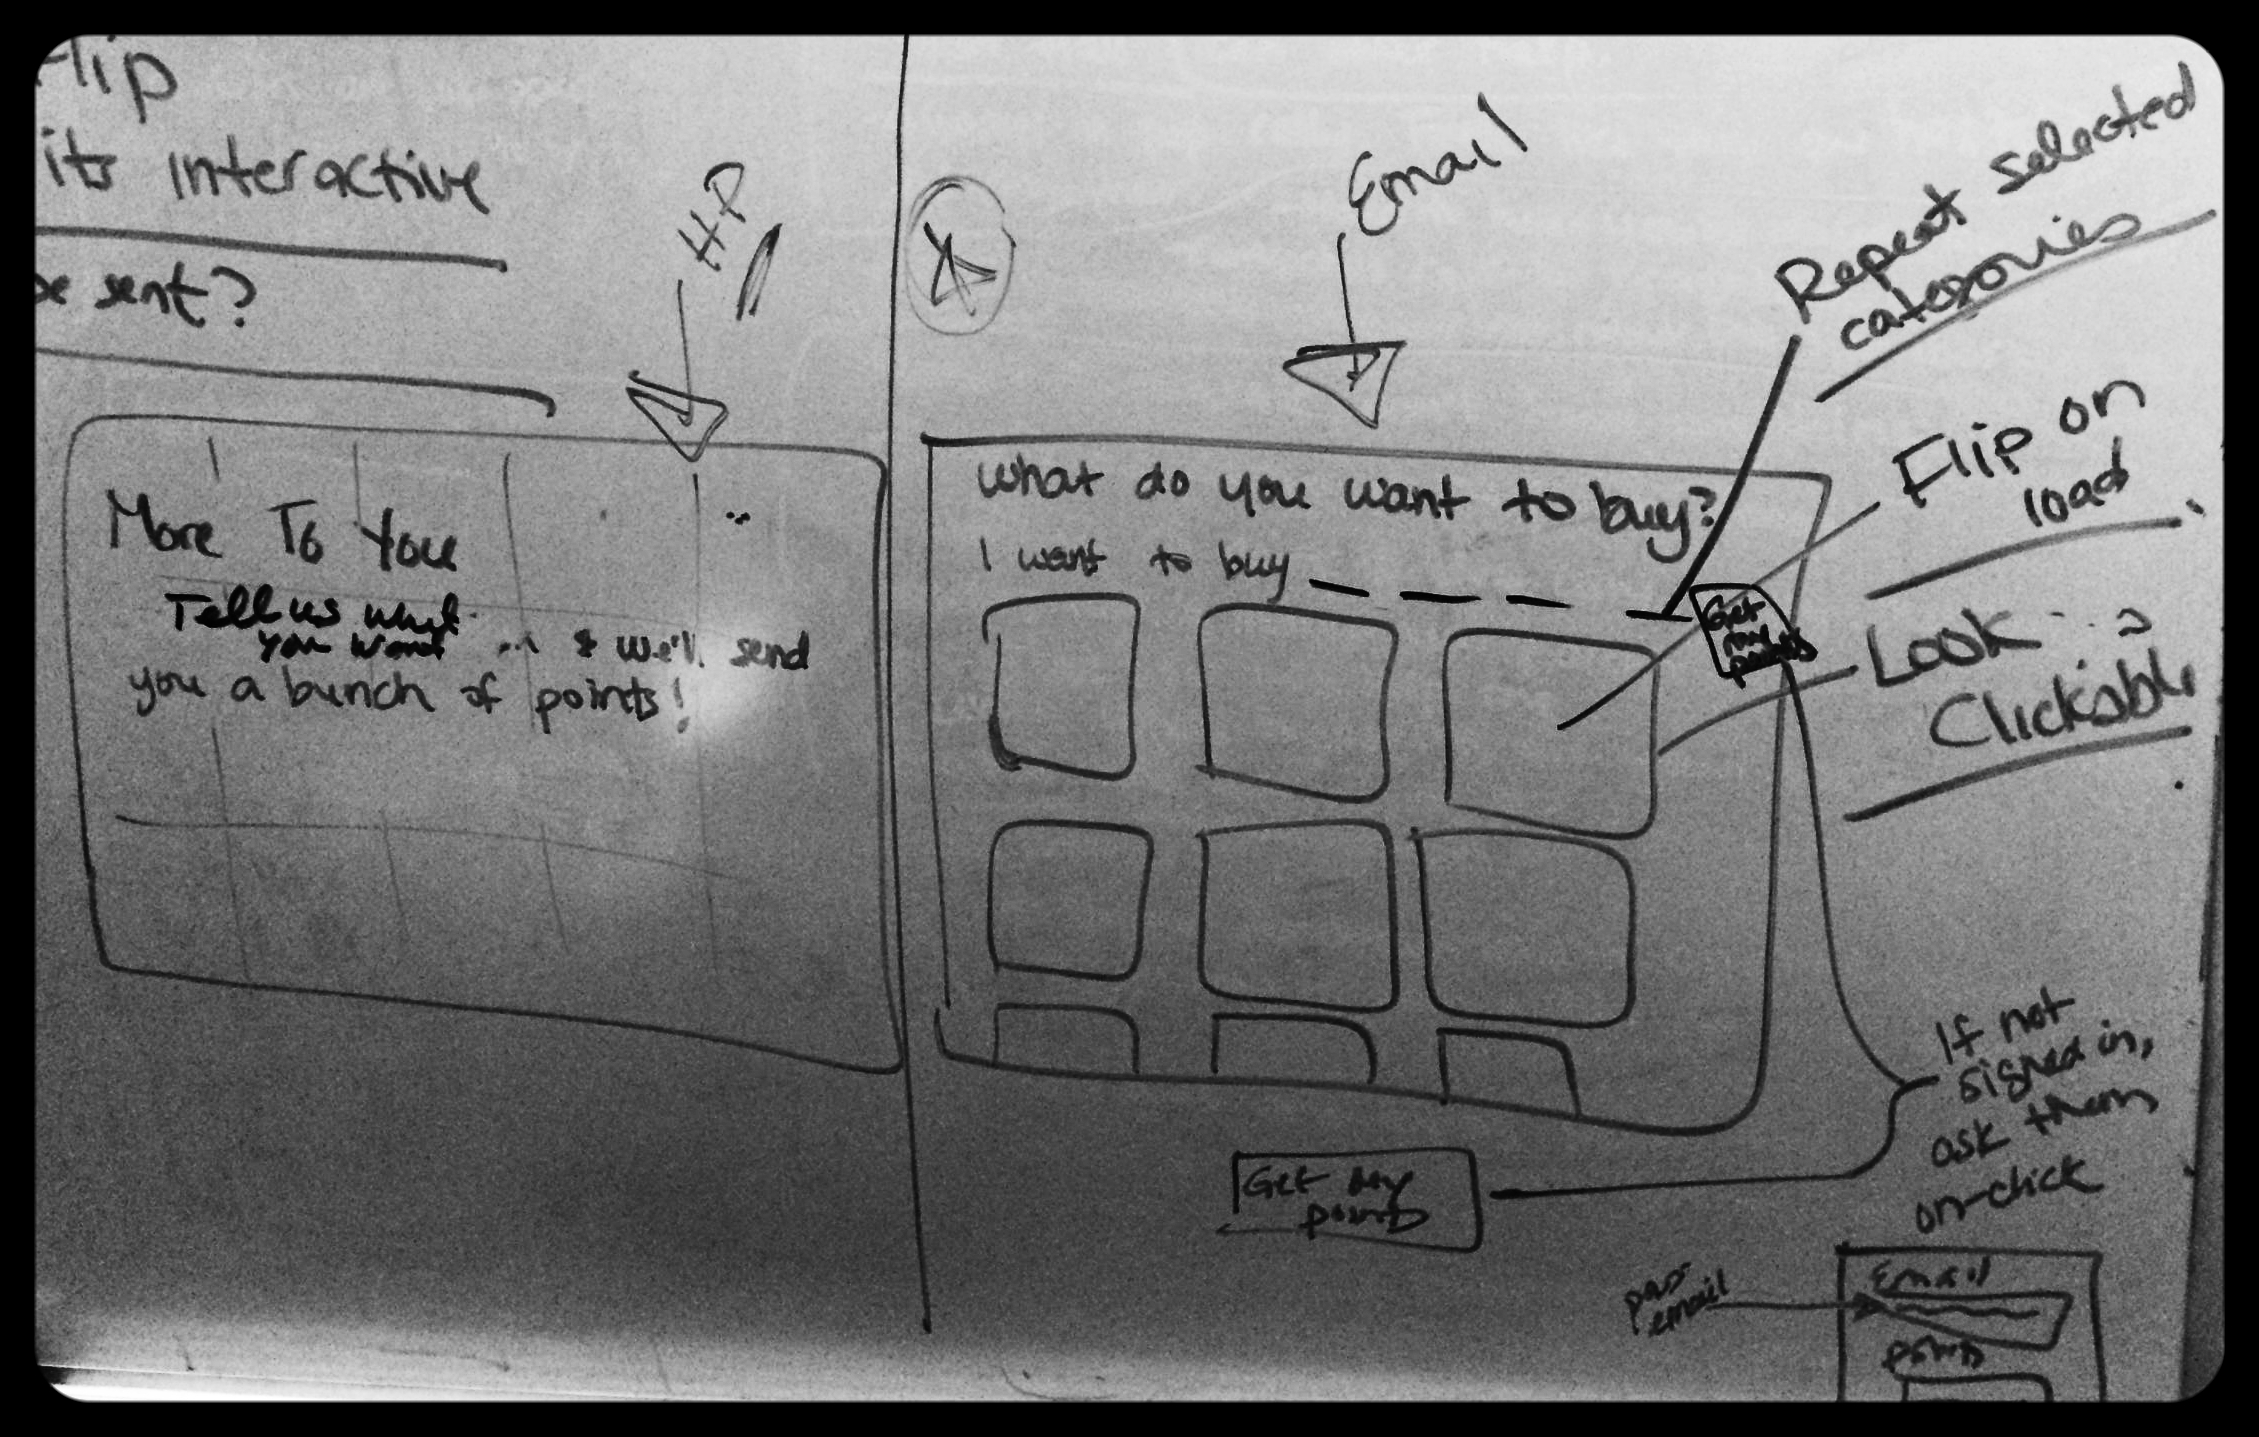 Whiteboarding key portions of the experience